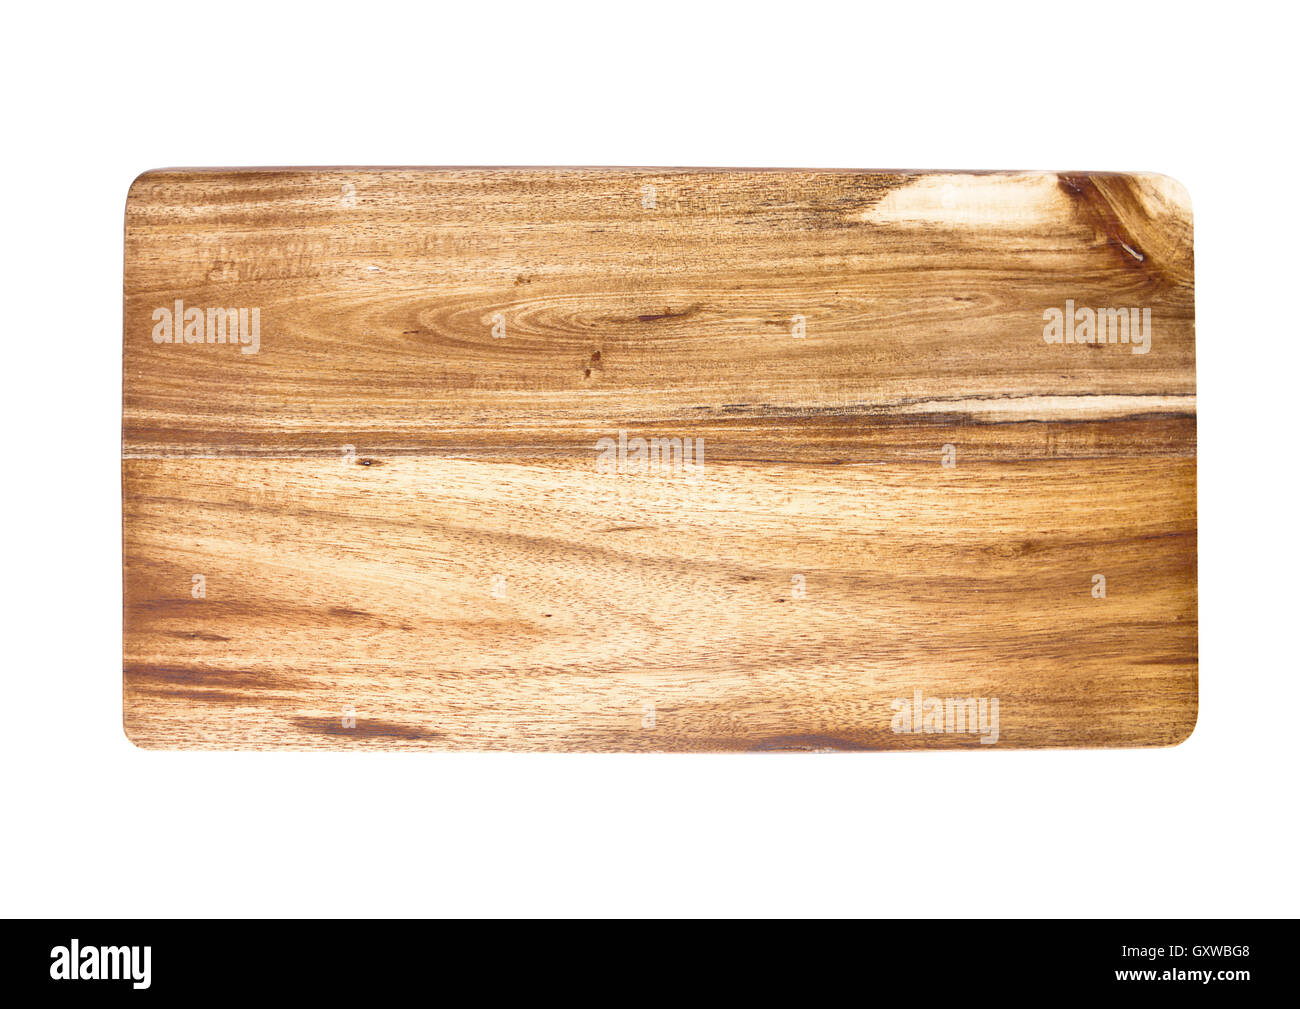 Wooden cutting board isolated on a white background best